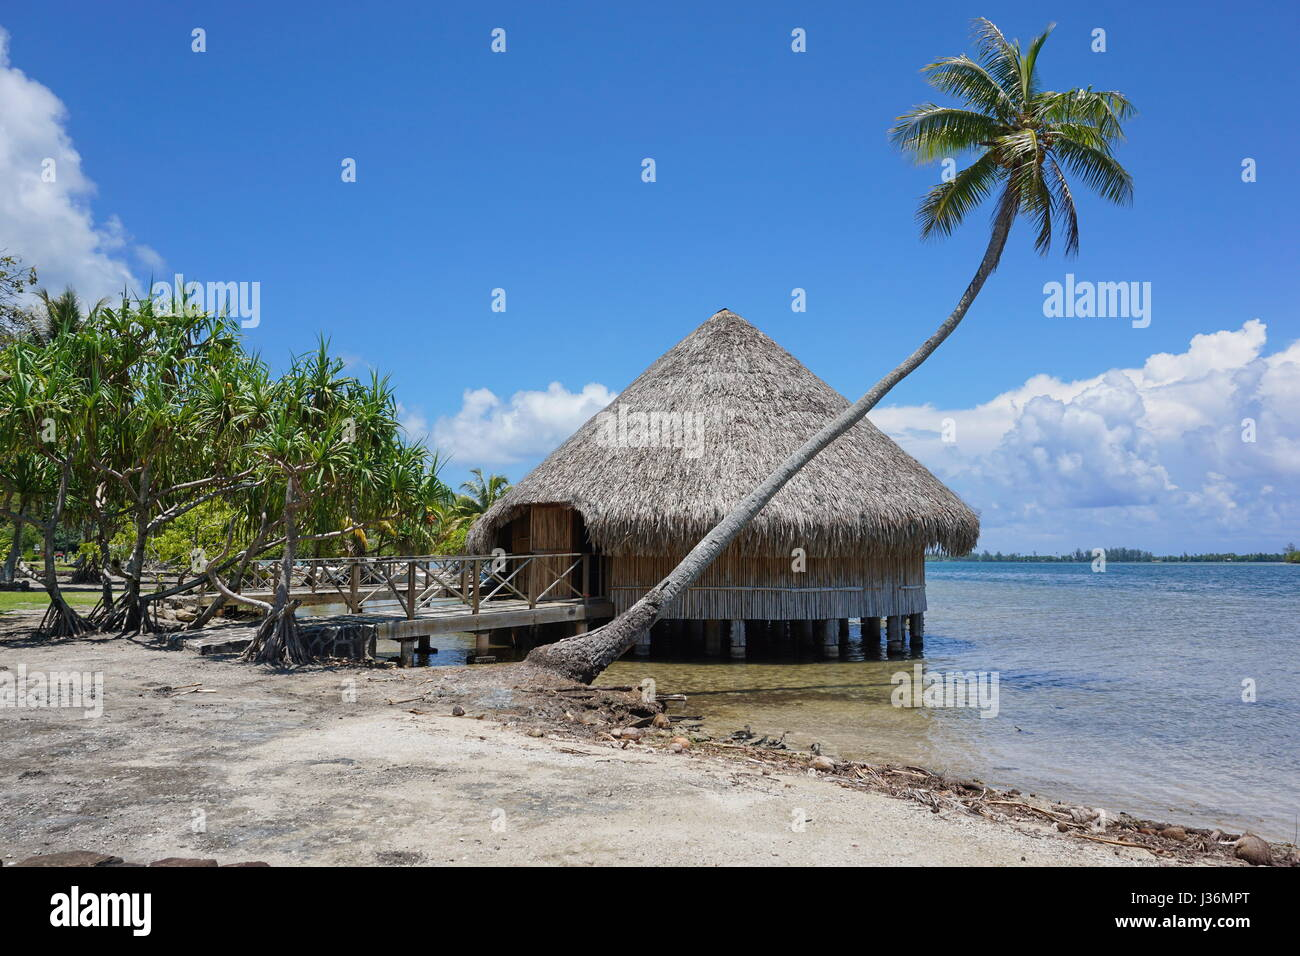 Typical construction Polynesian traditional housing Fare Potee on the shore of the lake Fauna Nui, Maeva, Huahine - Stock Image